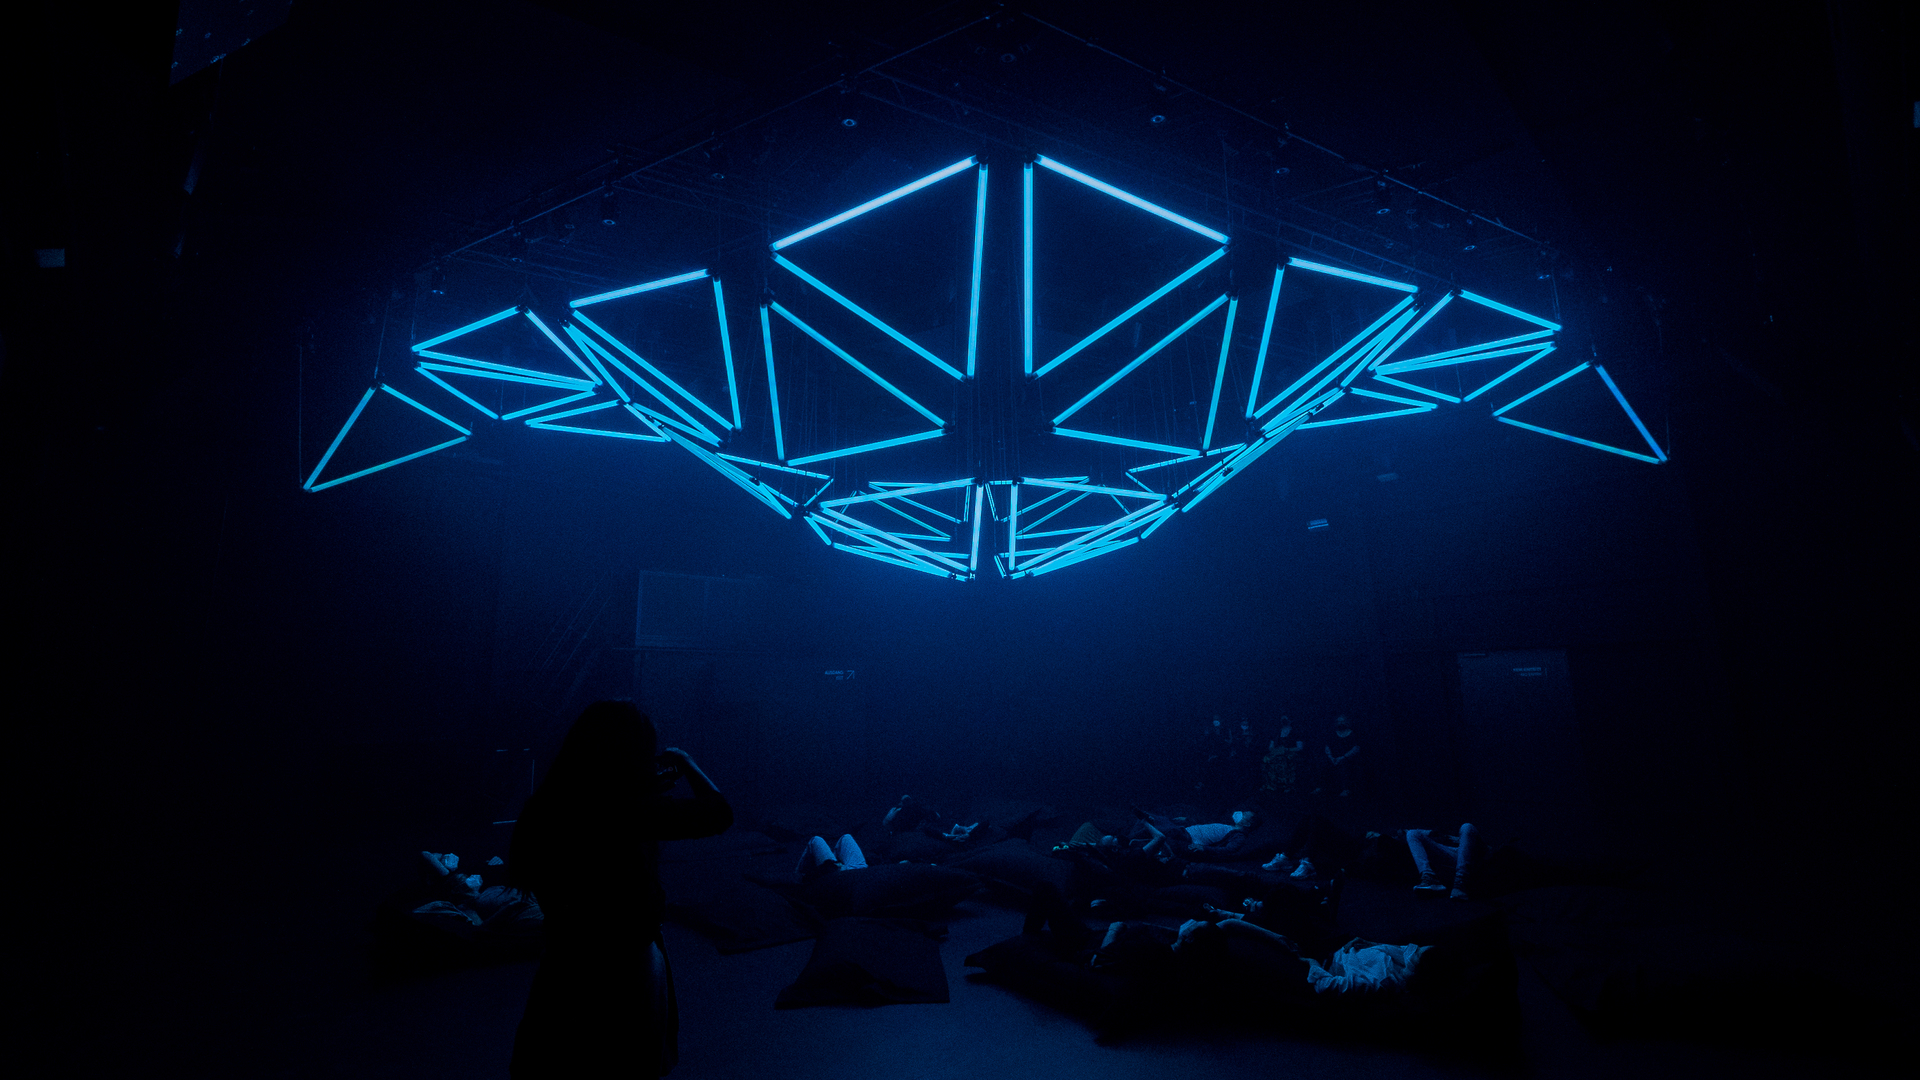 Look but also touch: the rise of immersive art